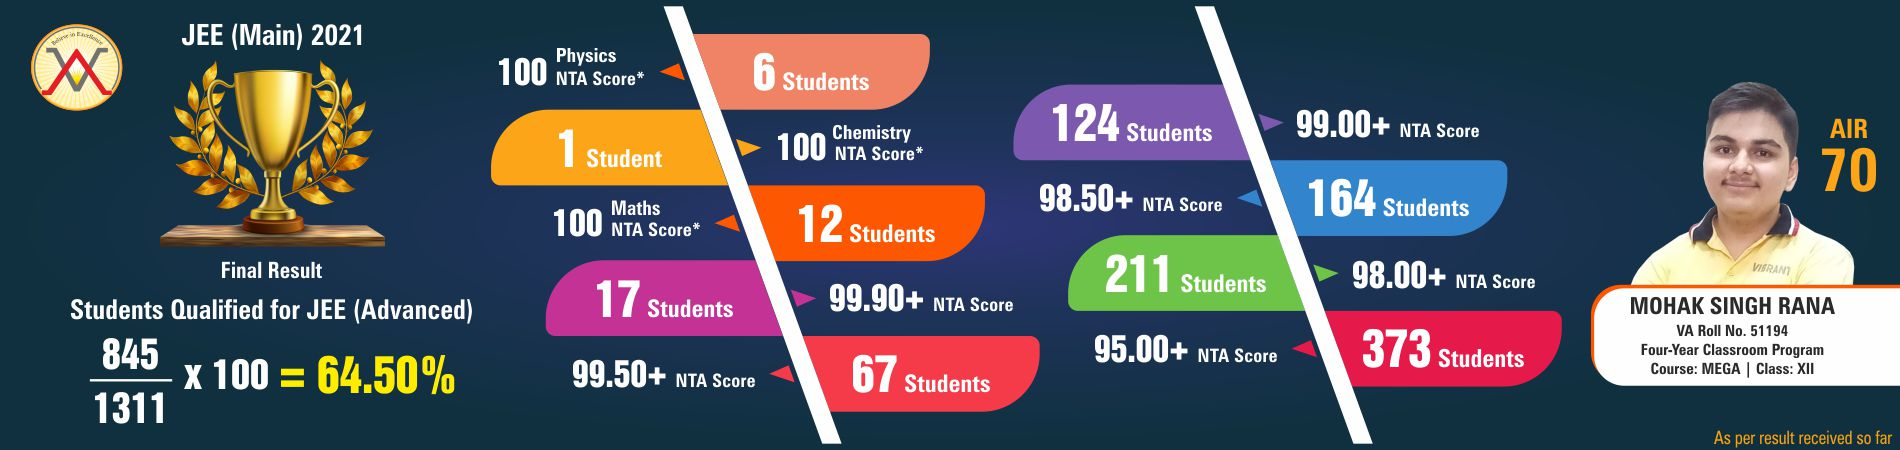 RESULT : JEE(Main) 2021 March Session